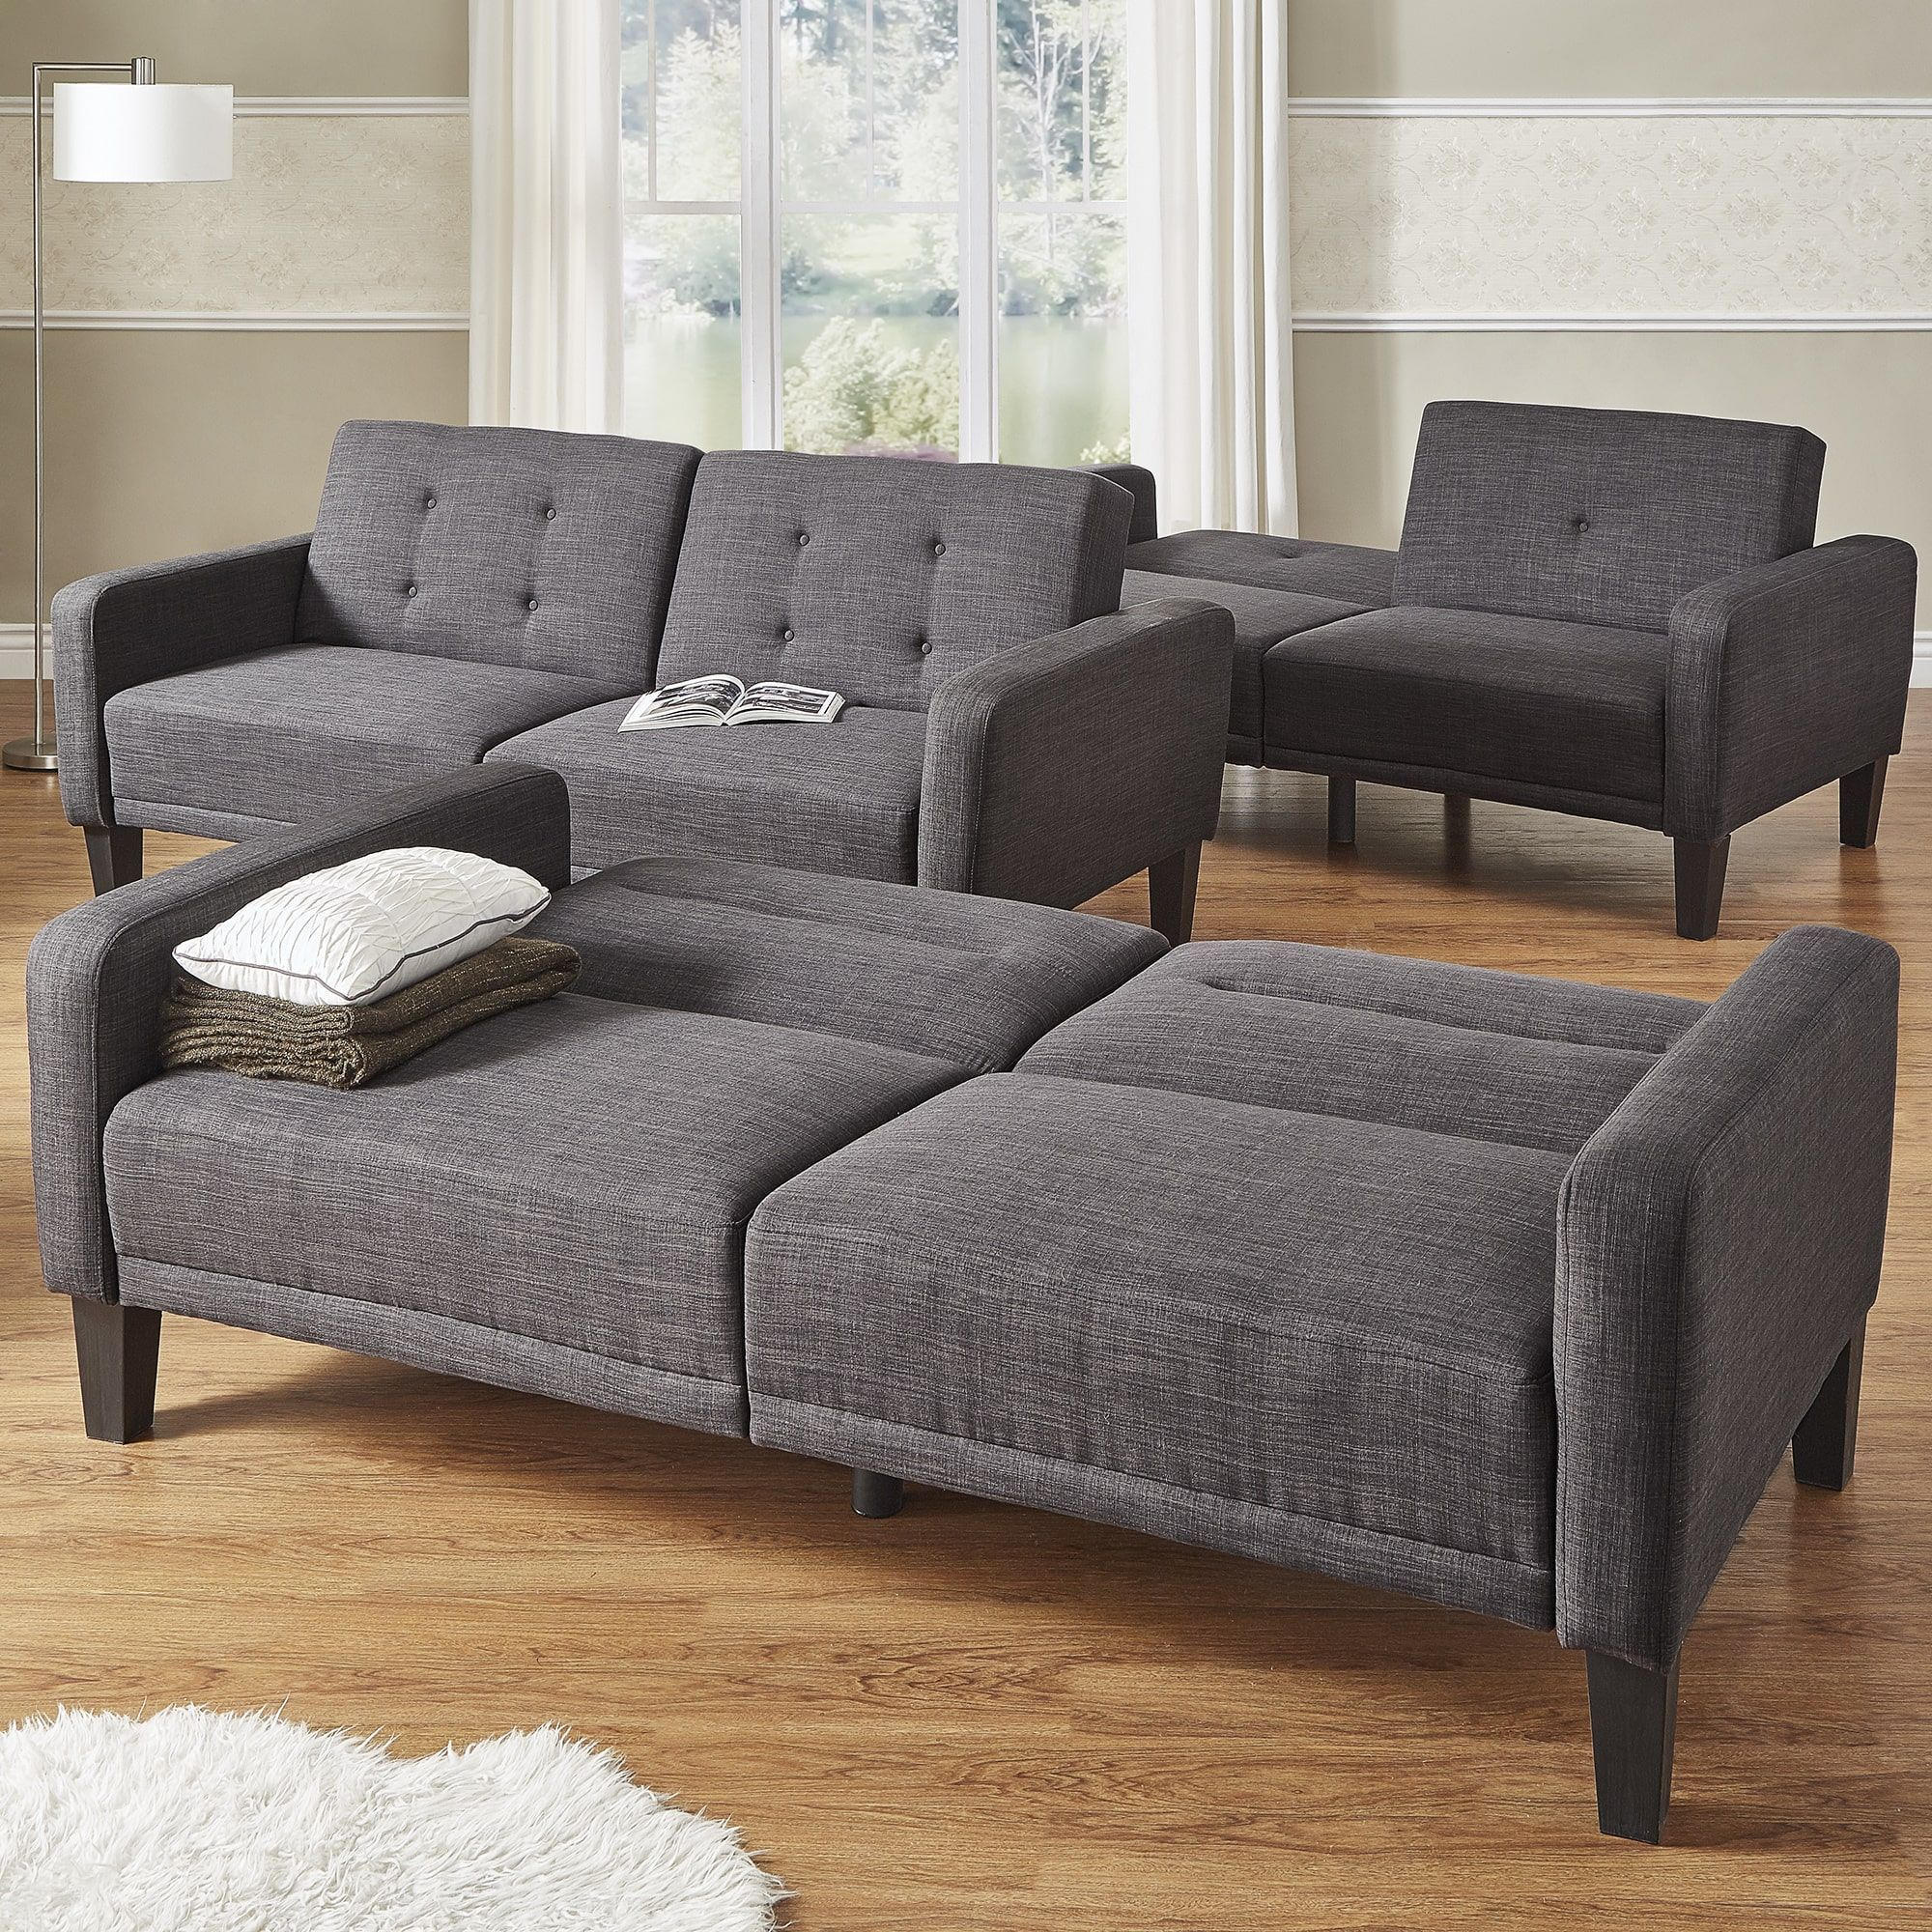 iNSPIRE Q Daxton Dark Grey Linen Rounded Arm Futon Sofa by MID-Century  Living